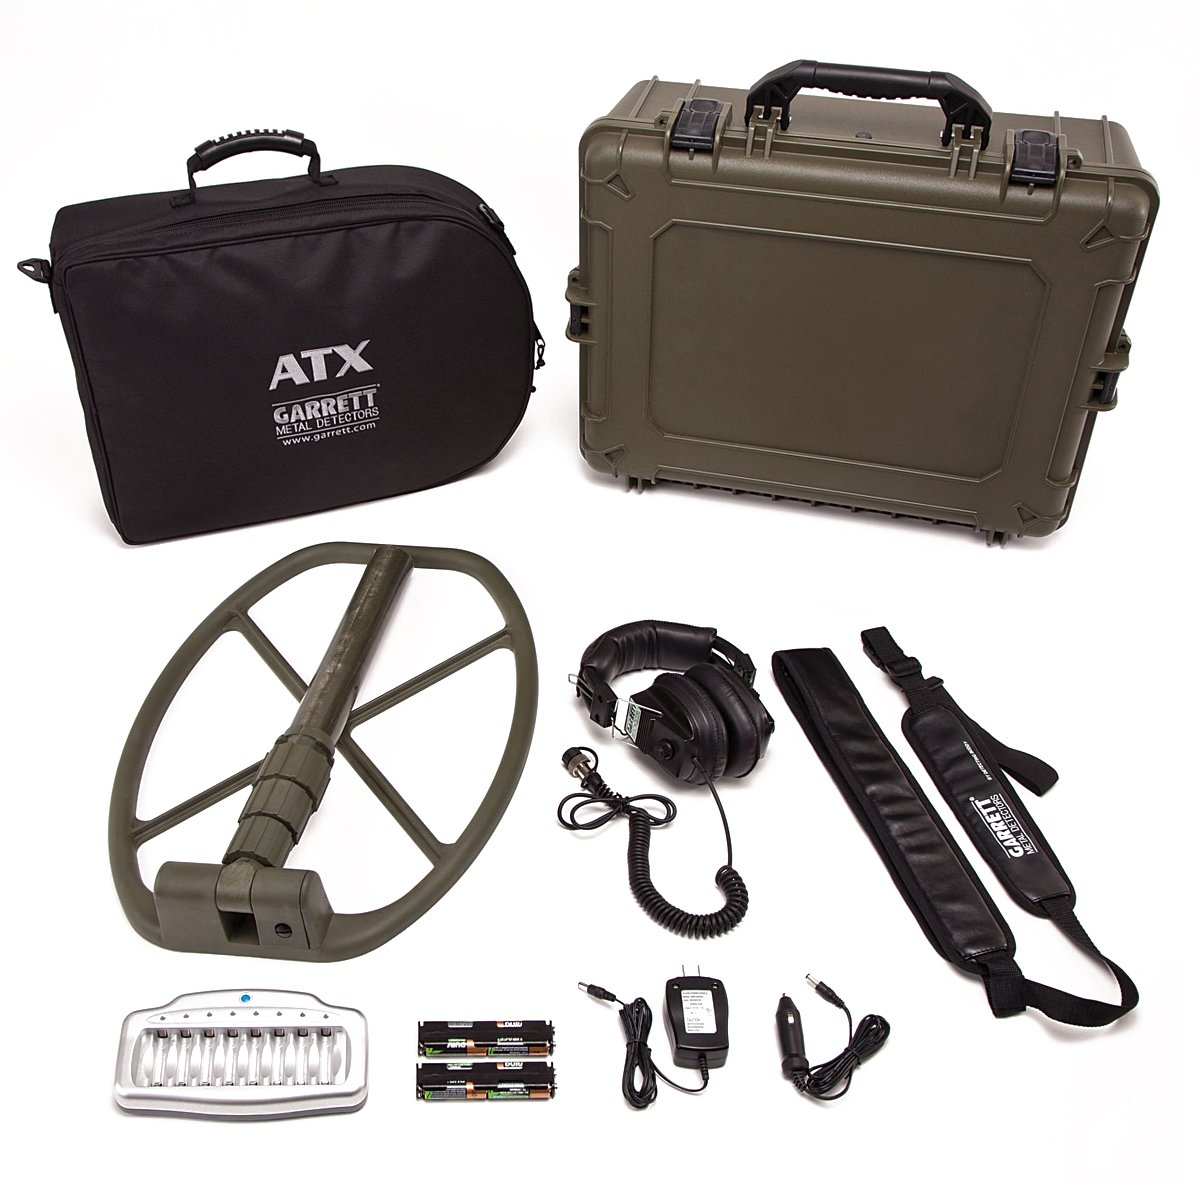 Amazon.com : Garrett ATX Deepseeker Package with 11x13